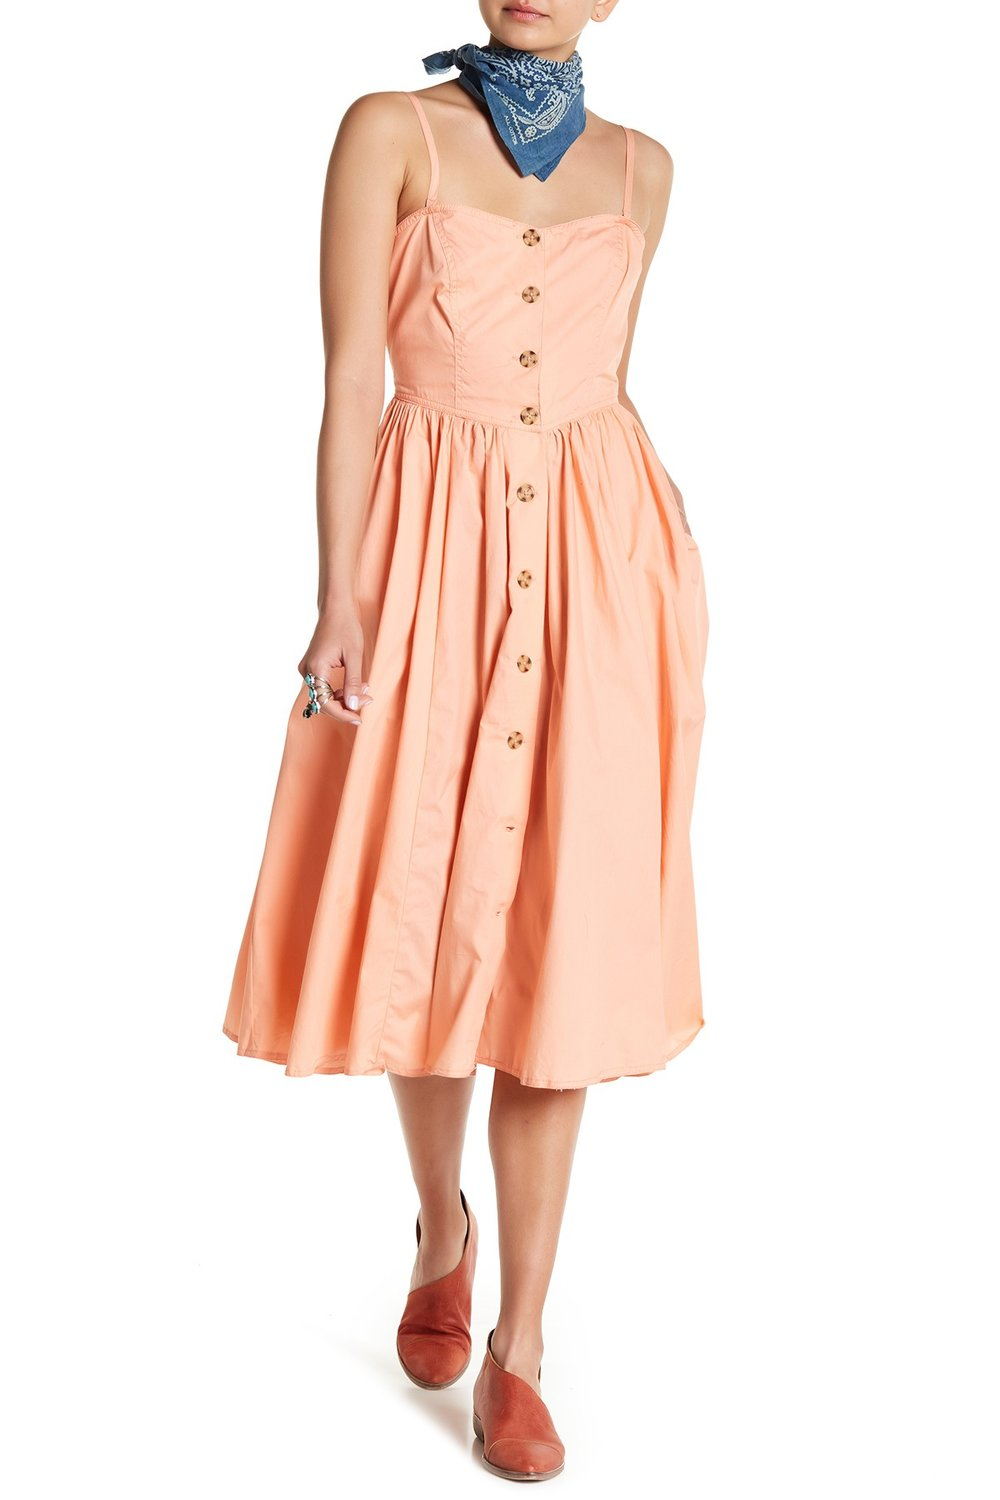 Get ready for more dresses like this one- feminine with an 80's vibe. This is great for a rectangle, hourglass or triangle shaped figure.  Free People Perfect Peach Poplin Mini Dress. Nordstrom Rack. Was: $108. Now: $69.